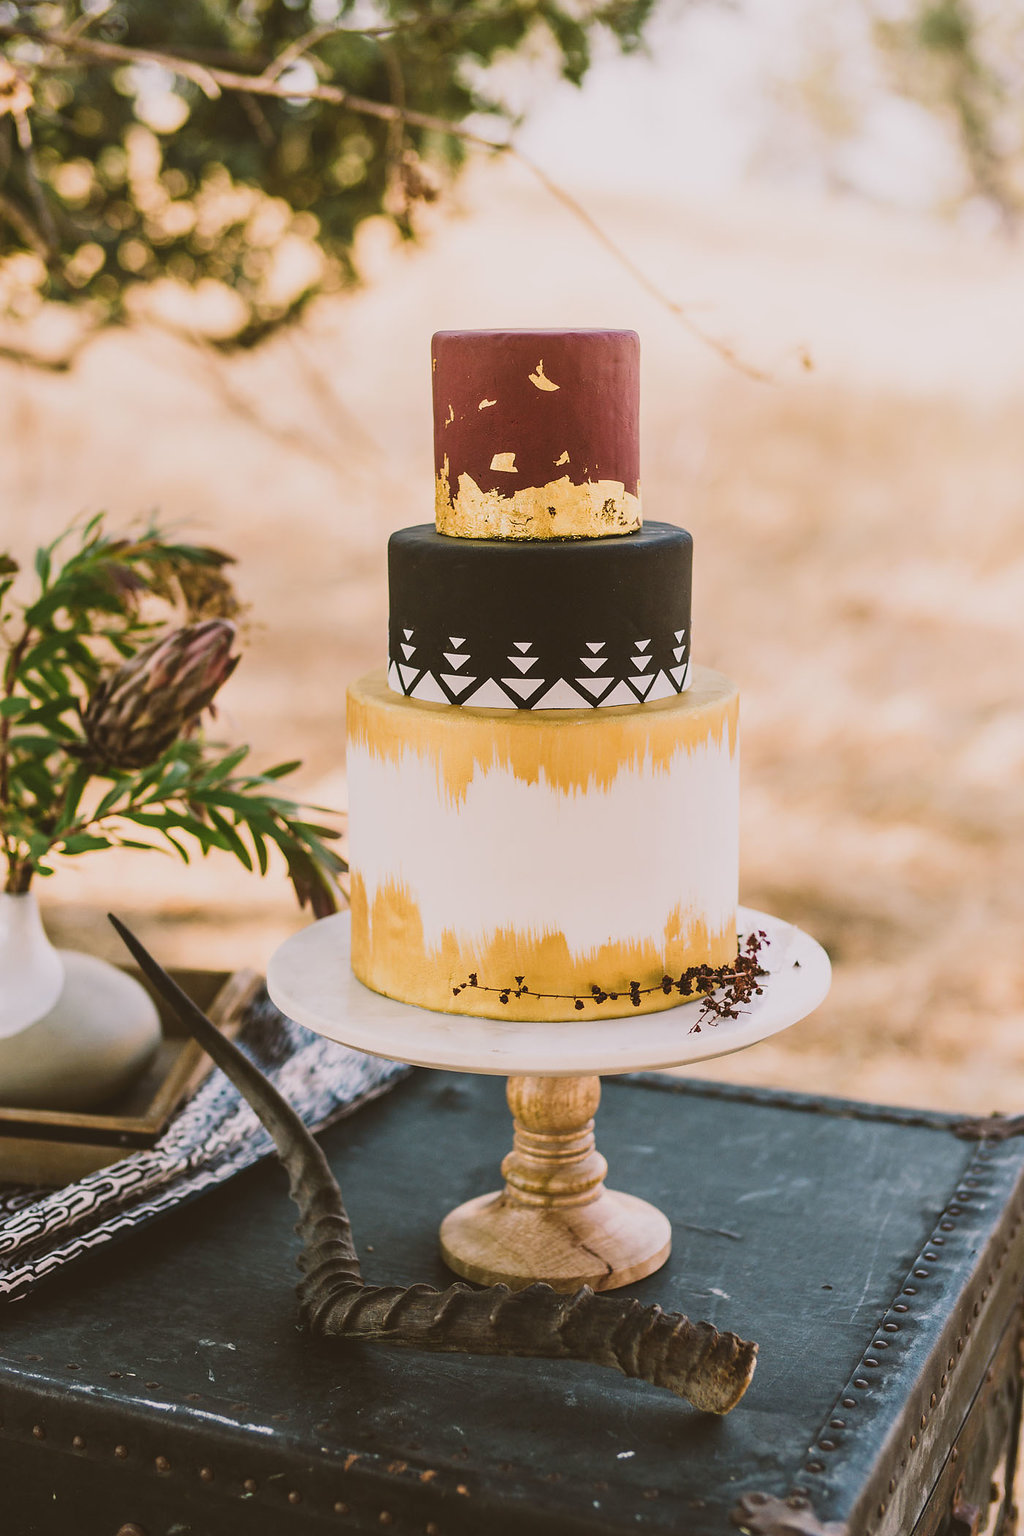 painted wedding cake - photo by Michelle Roller http://ruffledblog.com/wild-safari-inspiration-shoot-with-a-jeep